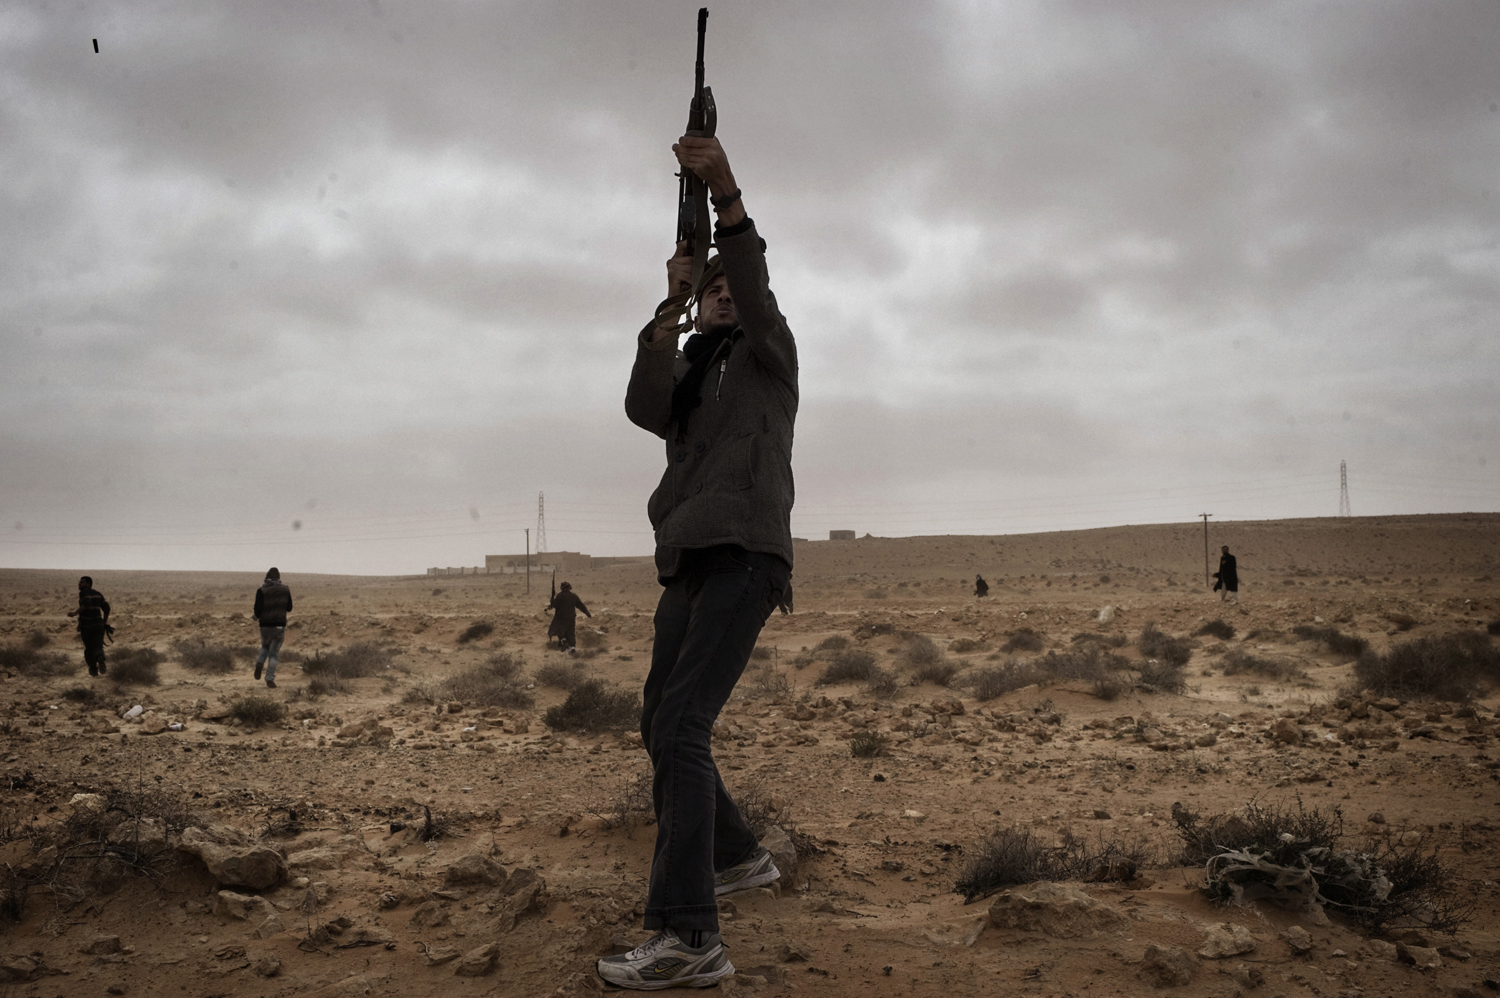 A rebel fires towards a Libyan government helicopter during a firefight in Bin Jawad, March 5, 2011.